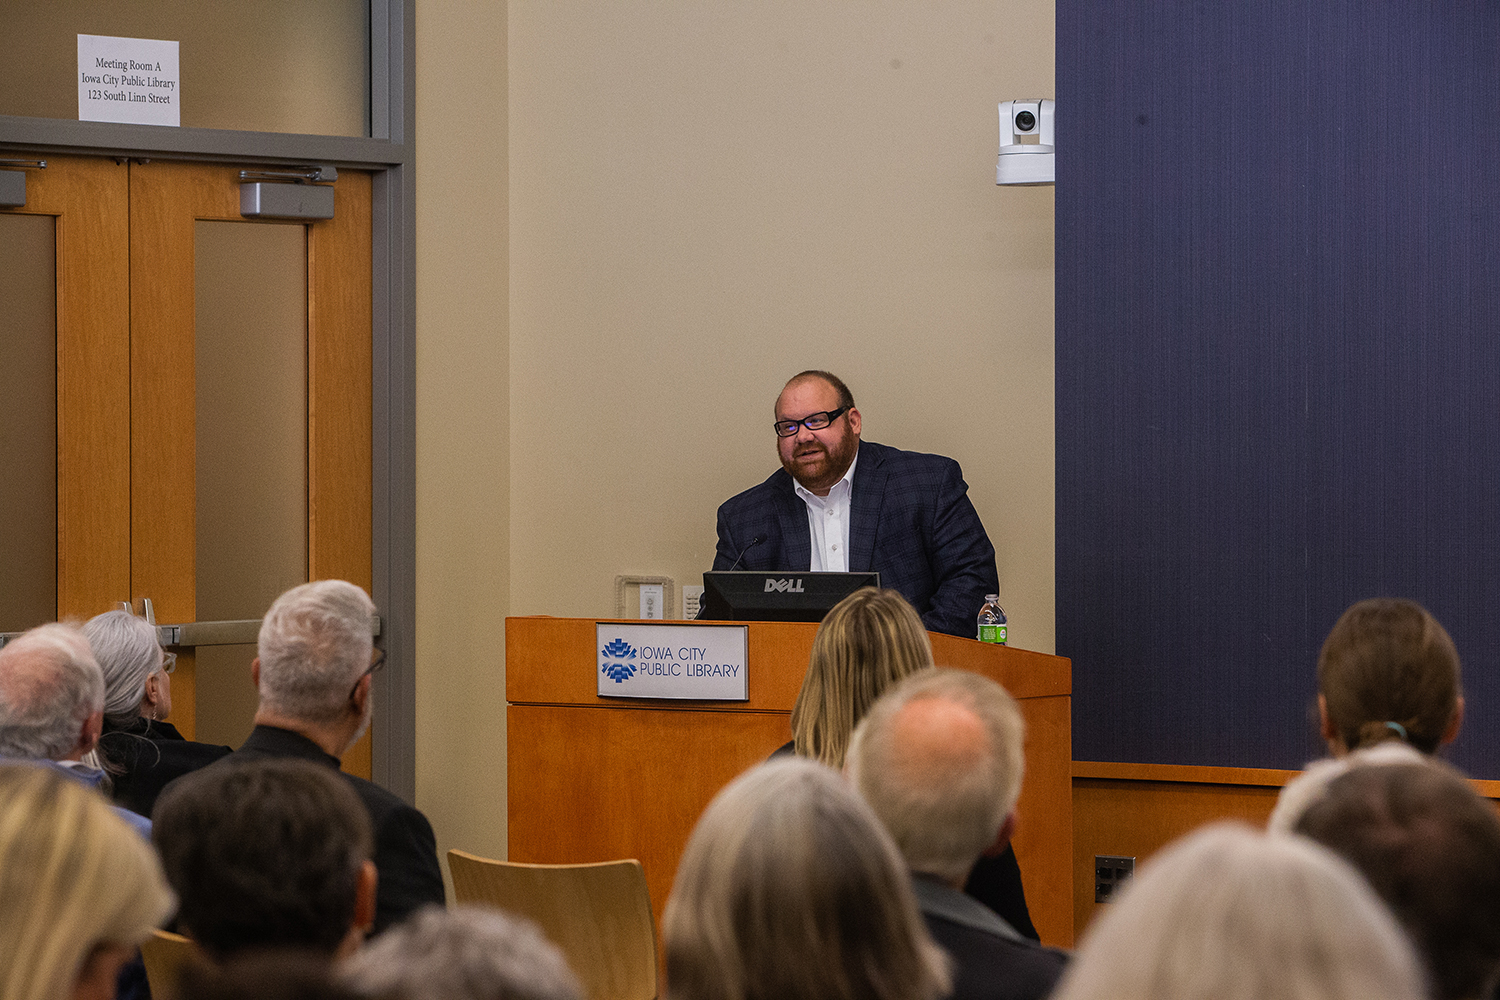 Elsworth Carman speaks during the Iowa City Public Library Director Candidate Forum on Monday, {man} 29, 2018. The Iowa City Public Library is seeking a new director after Susan Craig retires in December. Craig has served as Library Director for 41 years.